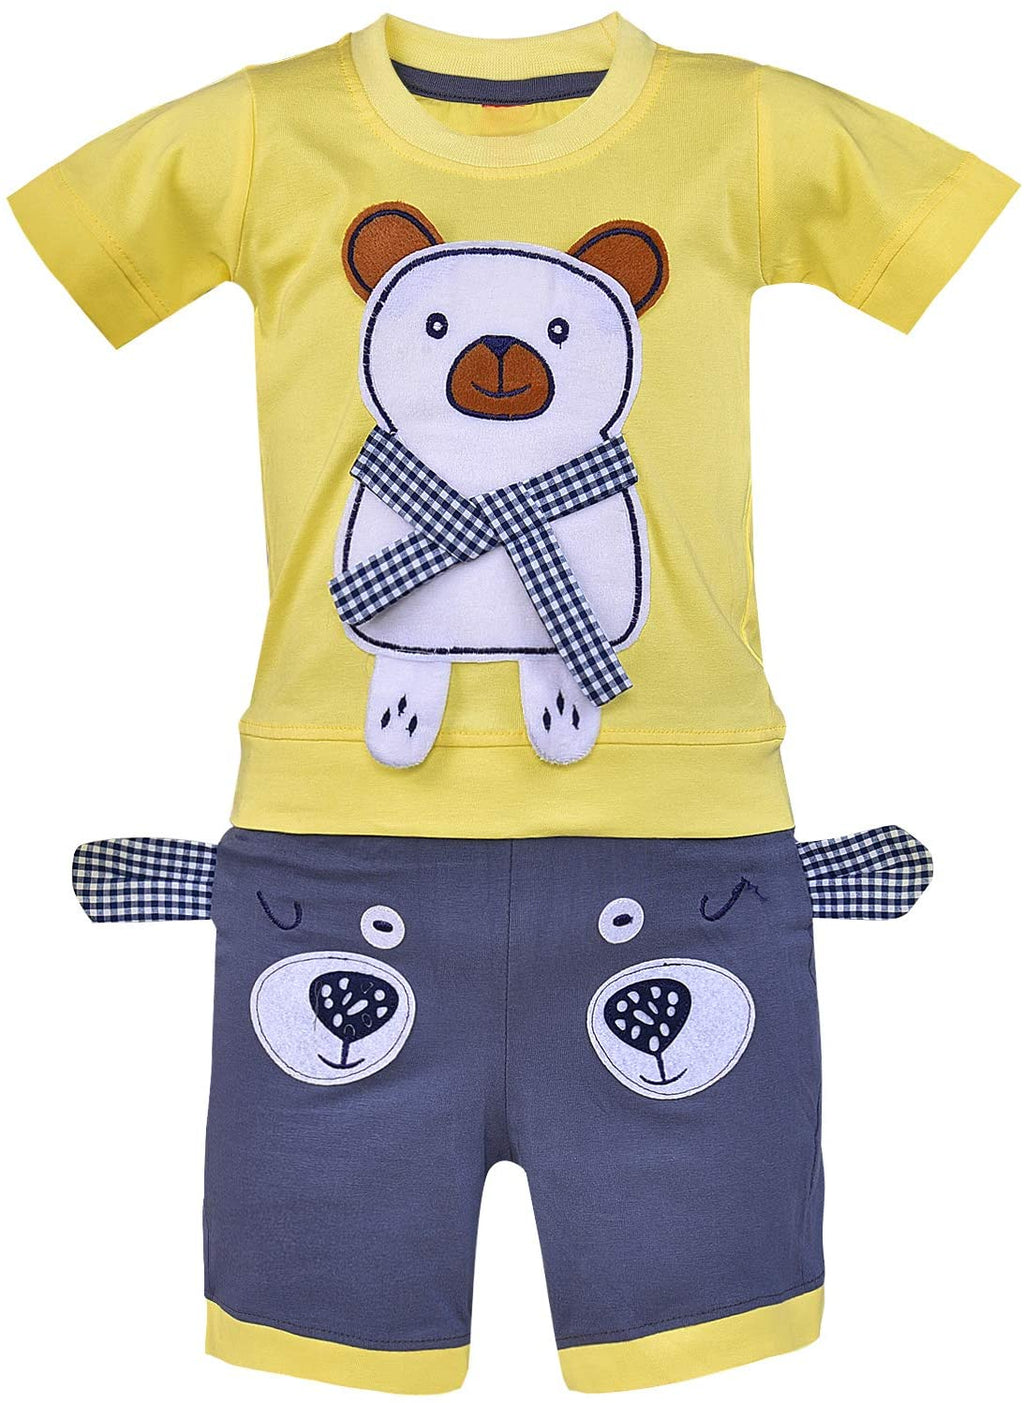 Wish Karo Unisex Clothing Sets for Baby Girls - Boys-(bt26y)